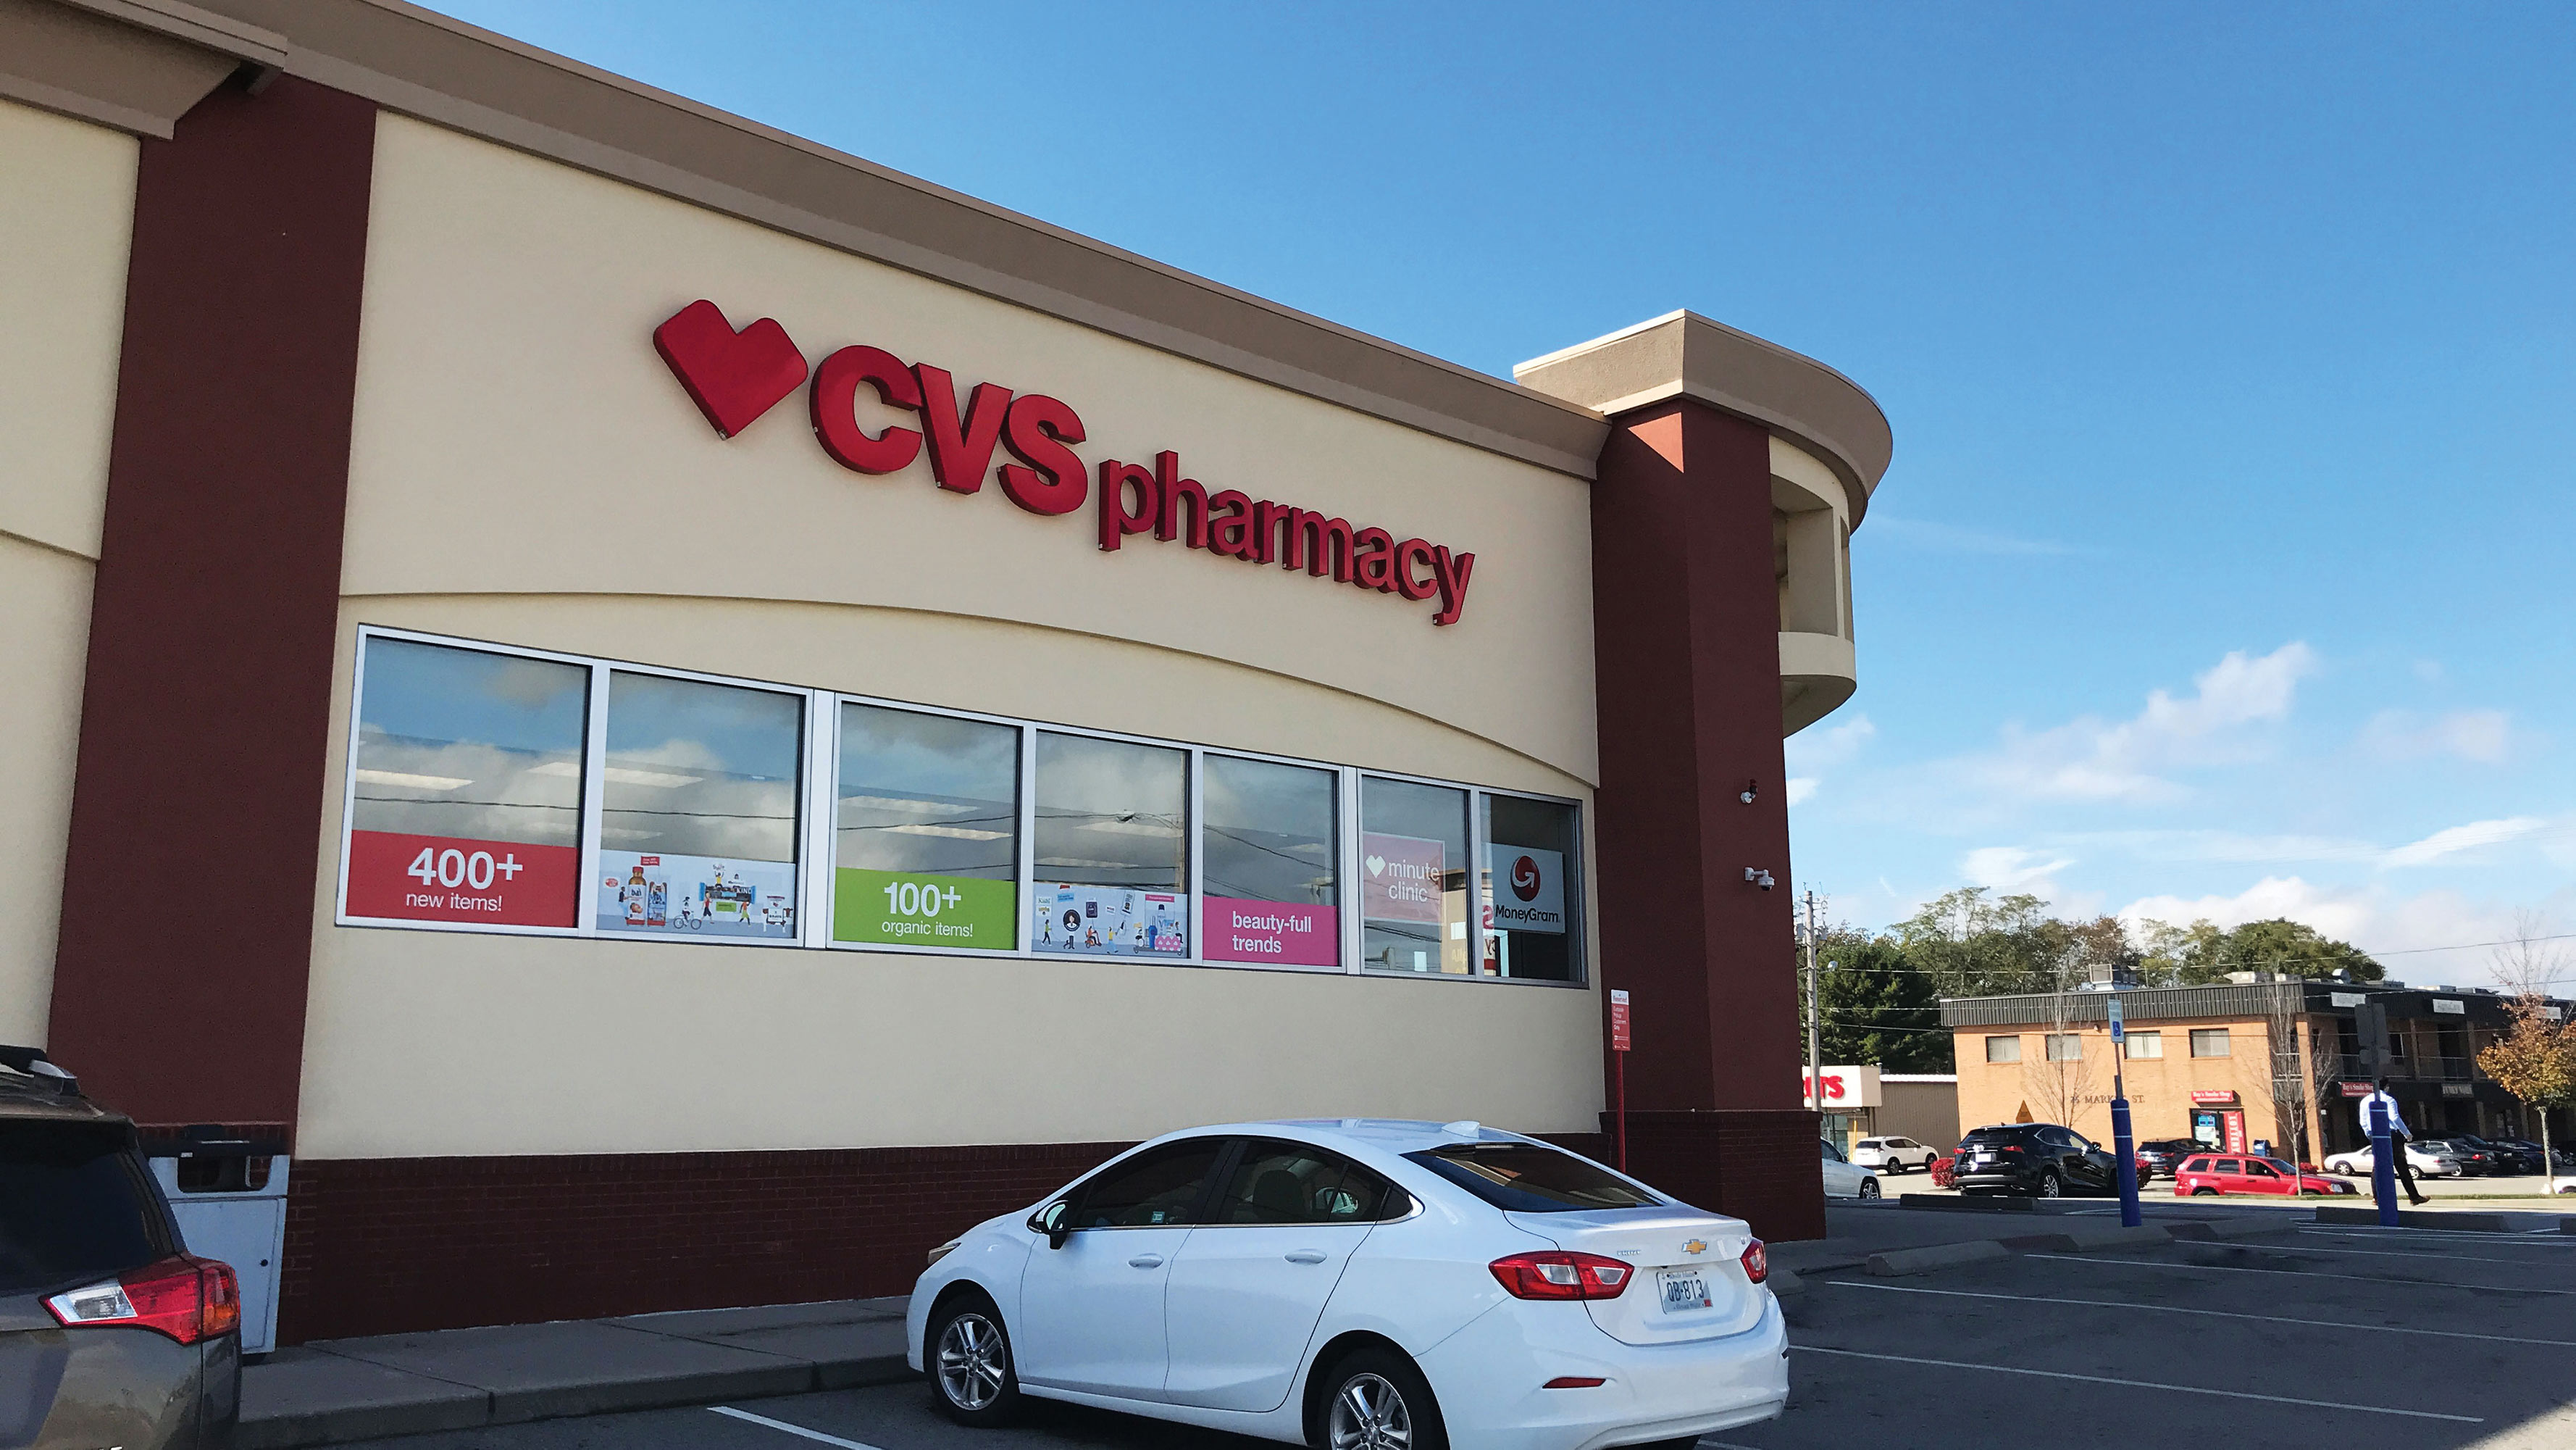 The exterior of the CVS Pharmacy location in Swansea, Massachusetts.